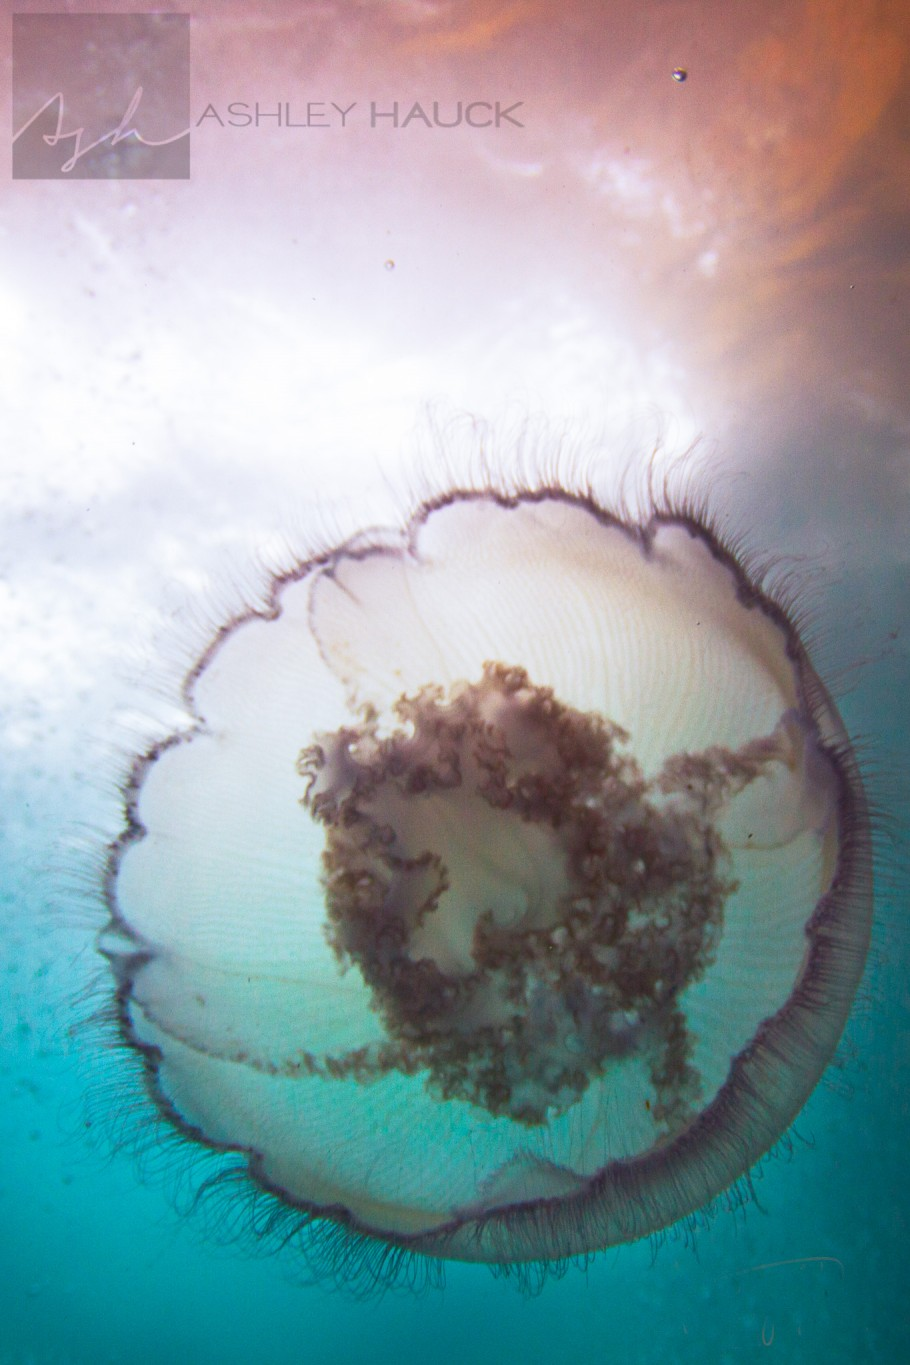 Jellyfish on Eureka oil rig